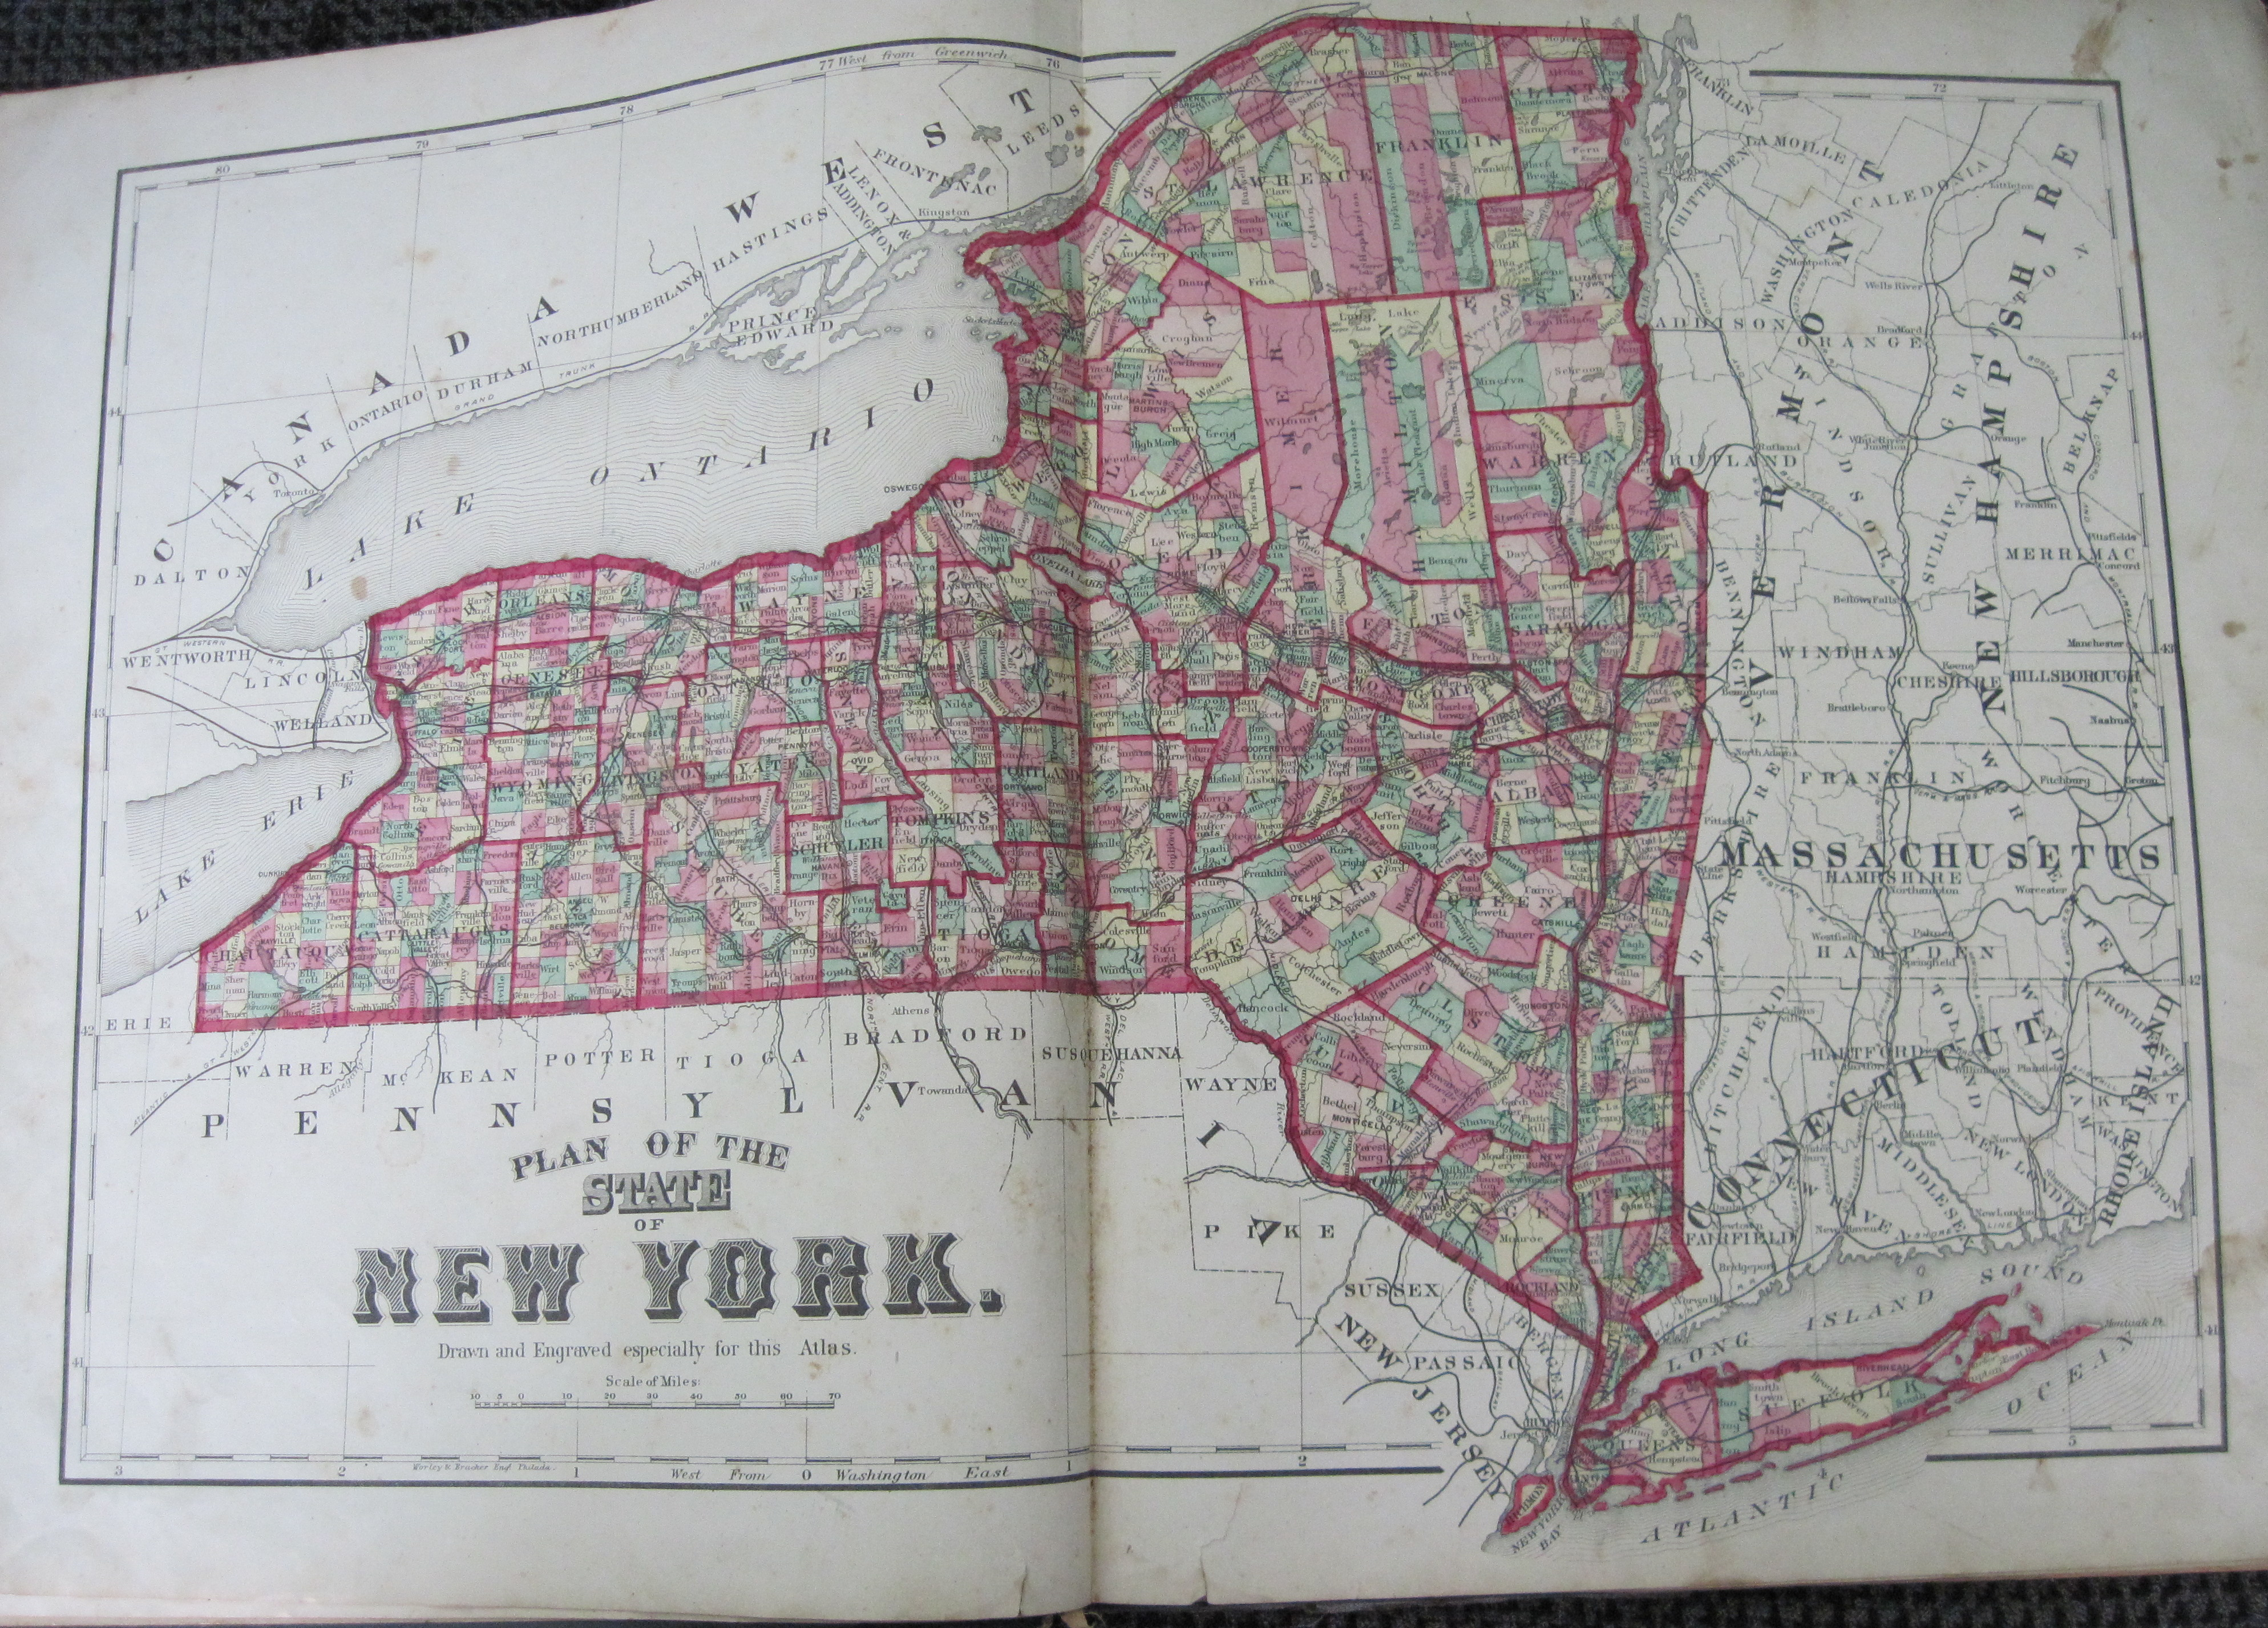 New york livingston county leicester - Pages 5 And 6 Map Of New York State